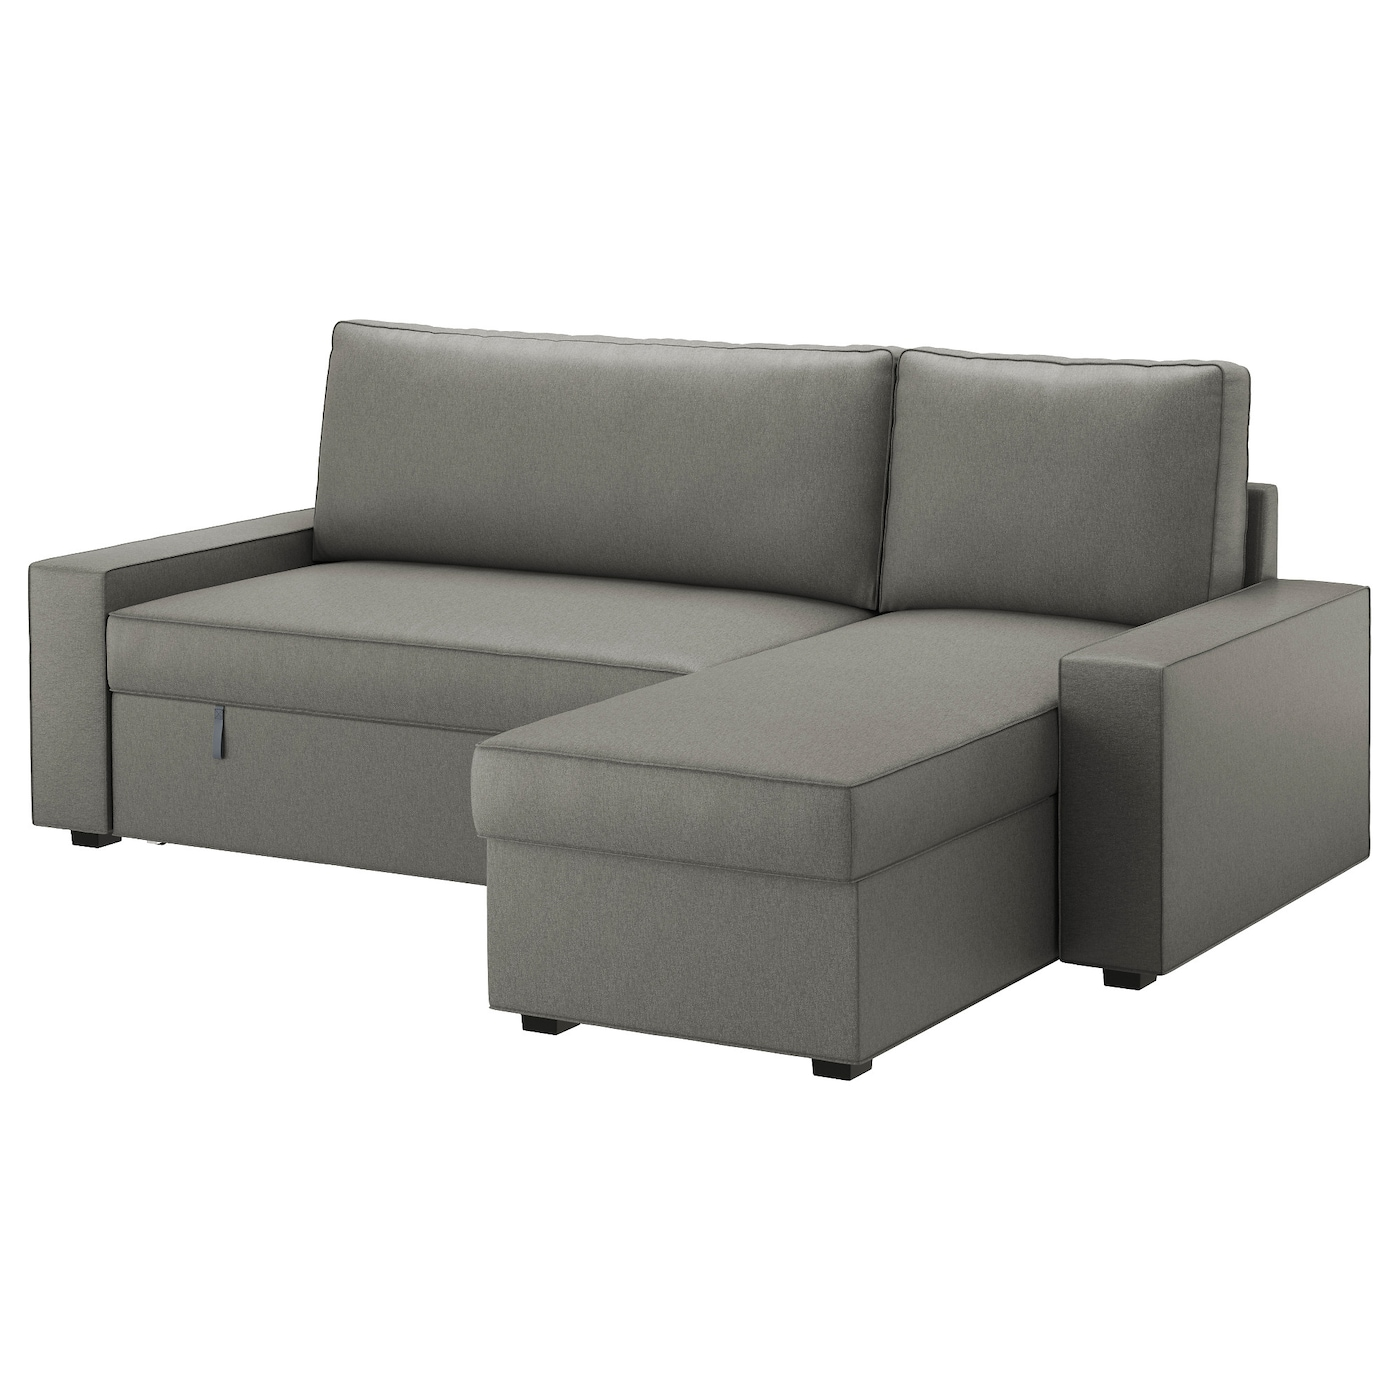 Sofa beds futons ikea for Furniture sofa bed